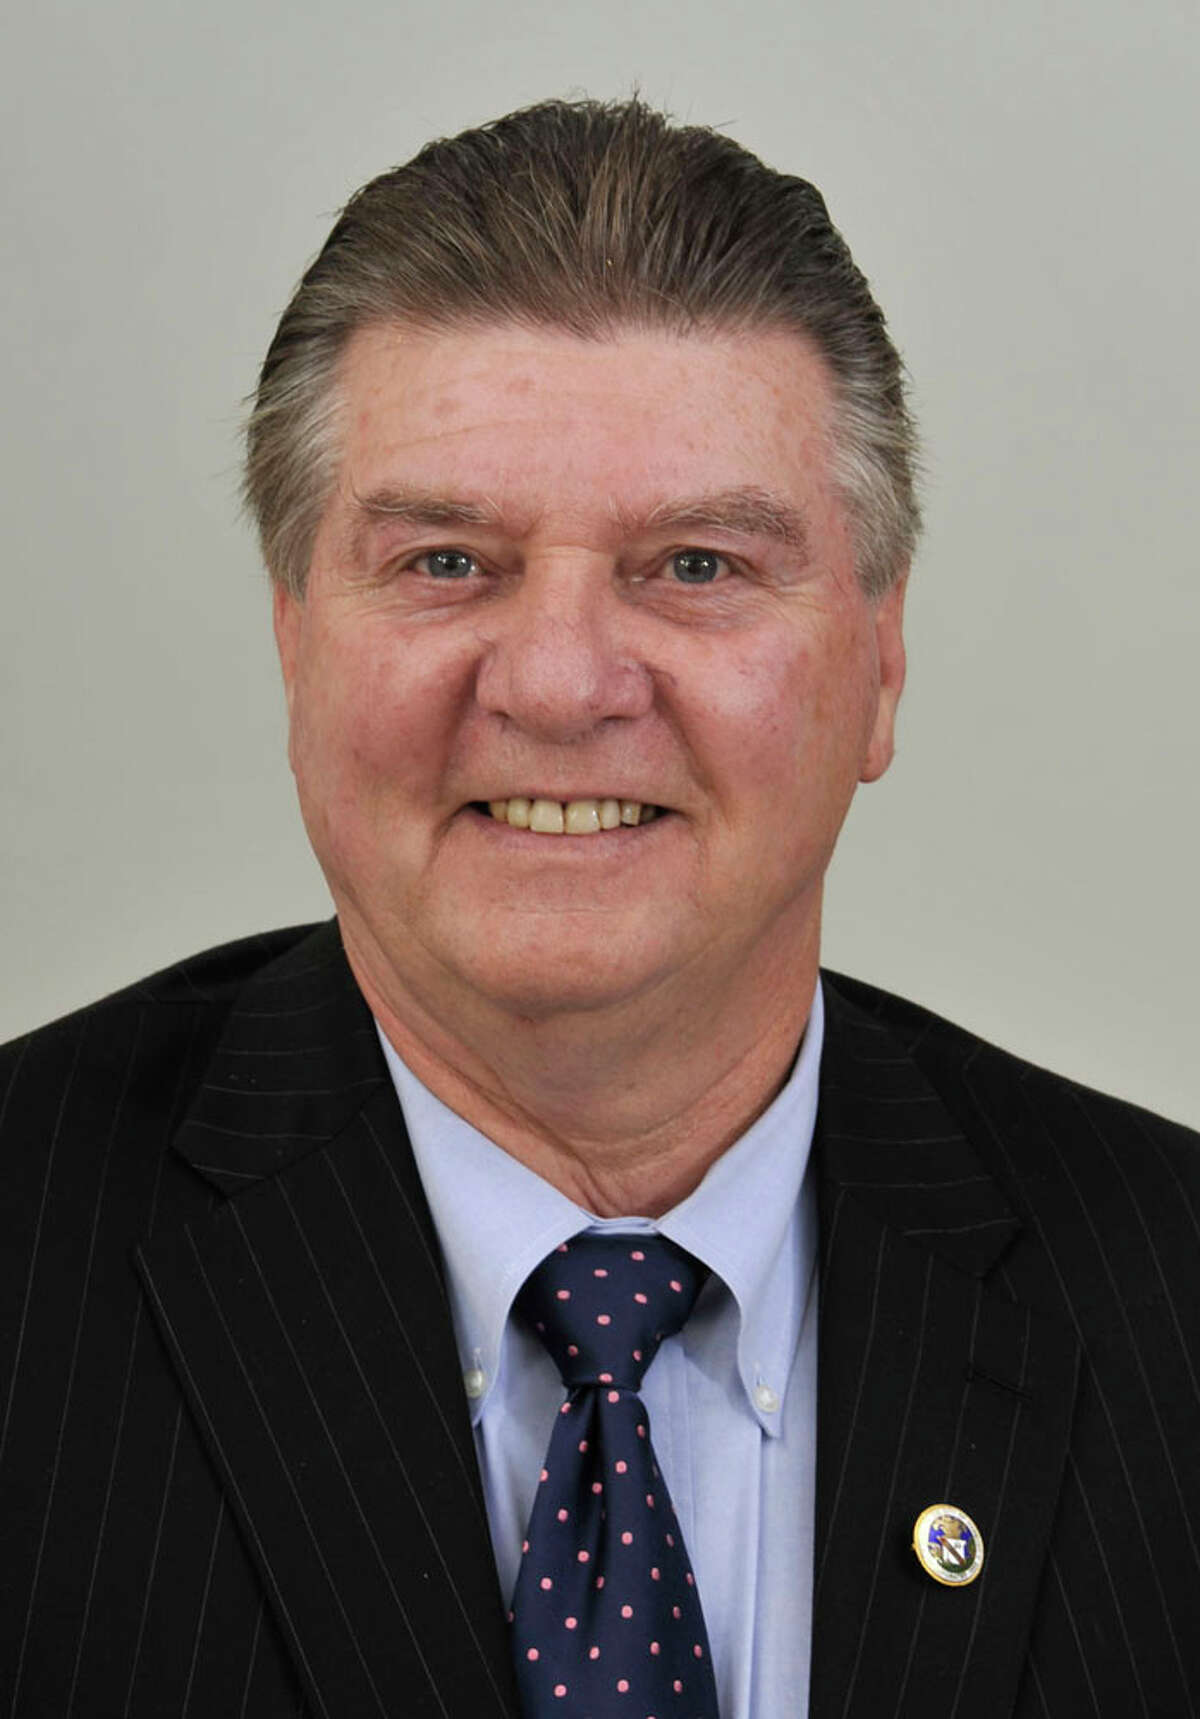 Terry Tierney, Republican candidate for state representative in the 110th District.